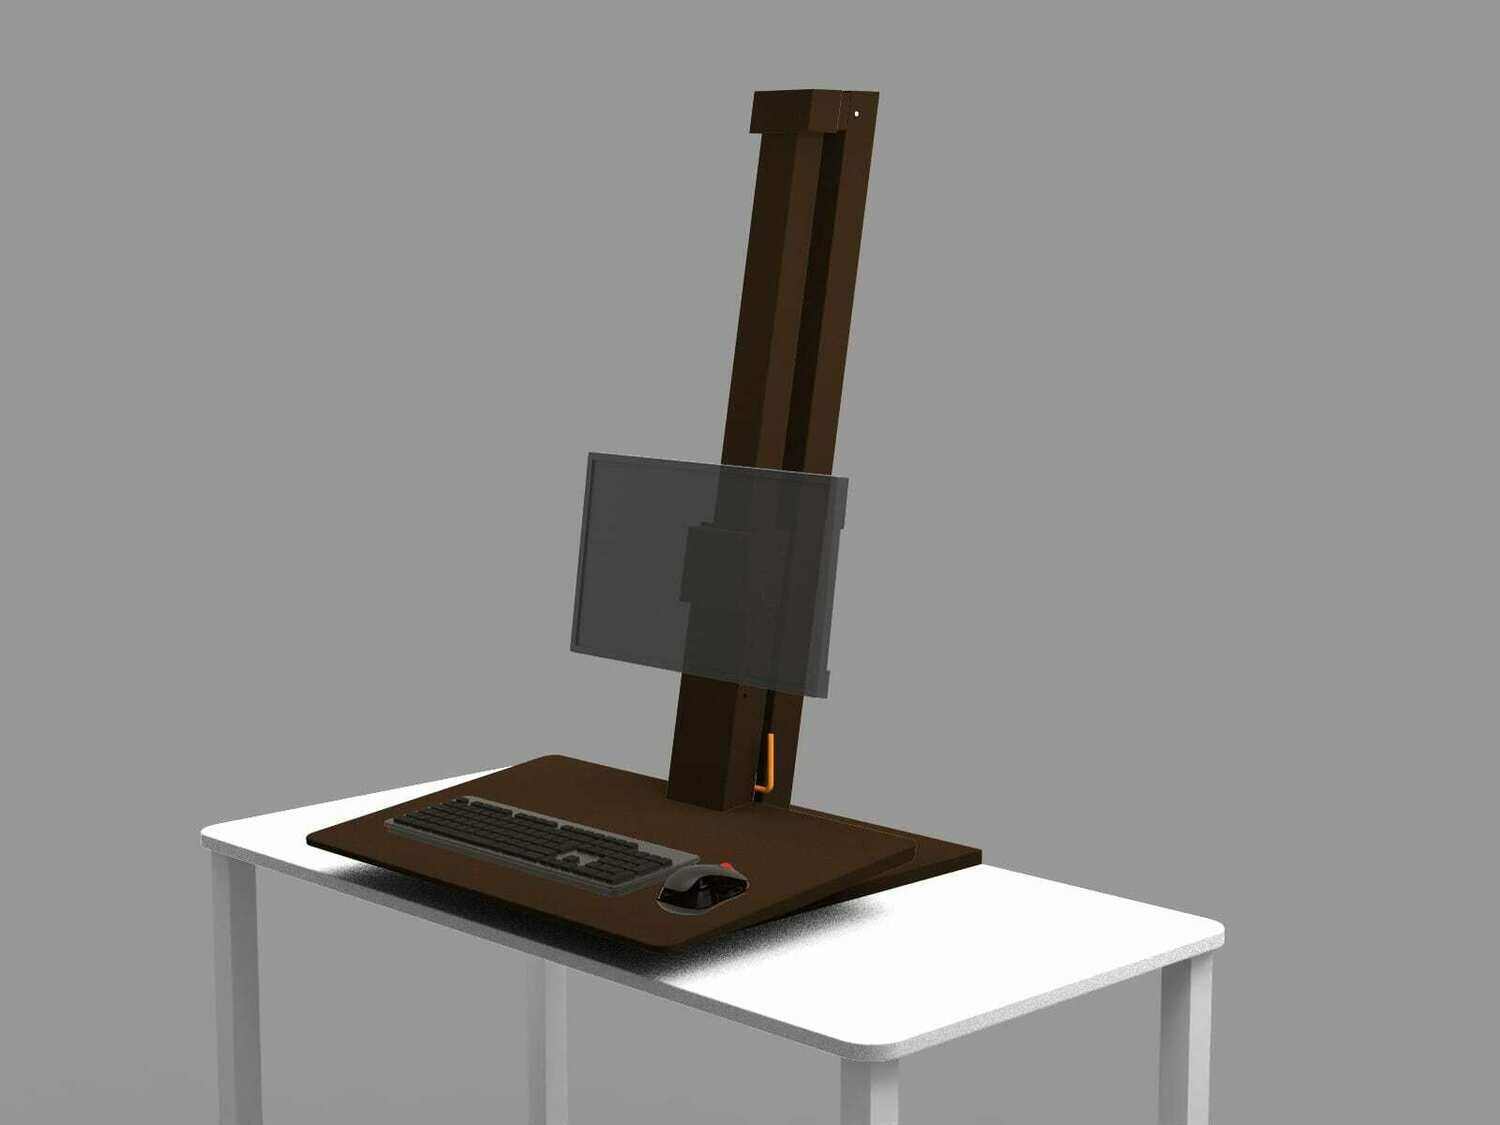 Opus Indigo EeTeeGo Table Mounted Sit/Stand fixture for Laptop & Desktop.